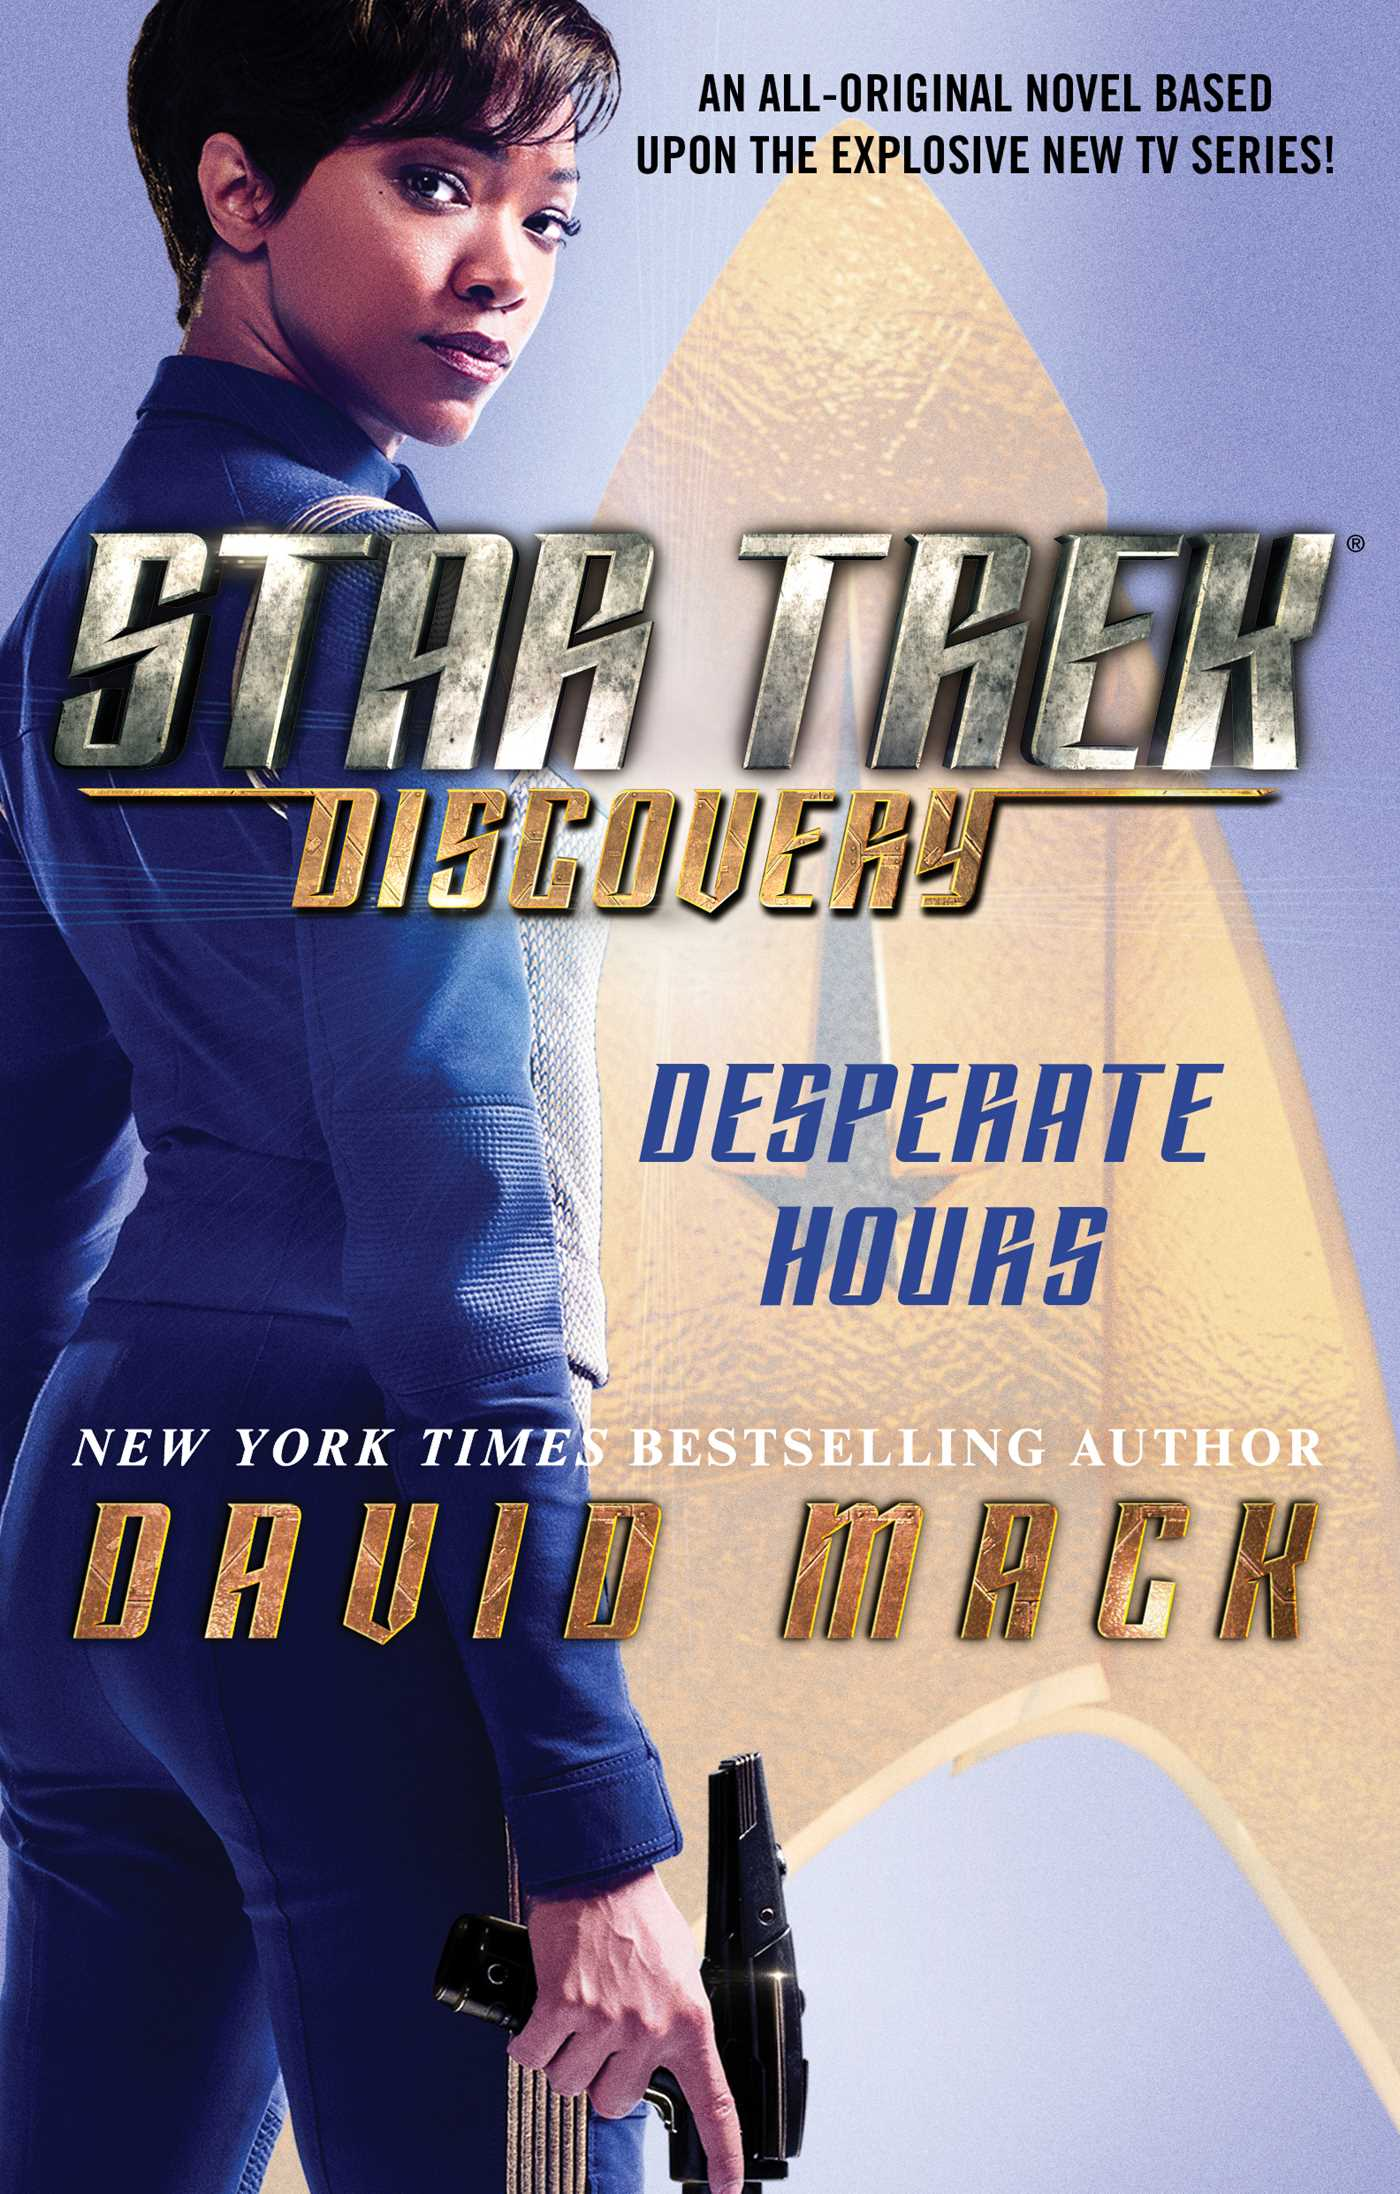 Star trek discovery desperate hours 9781501164613 hr